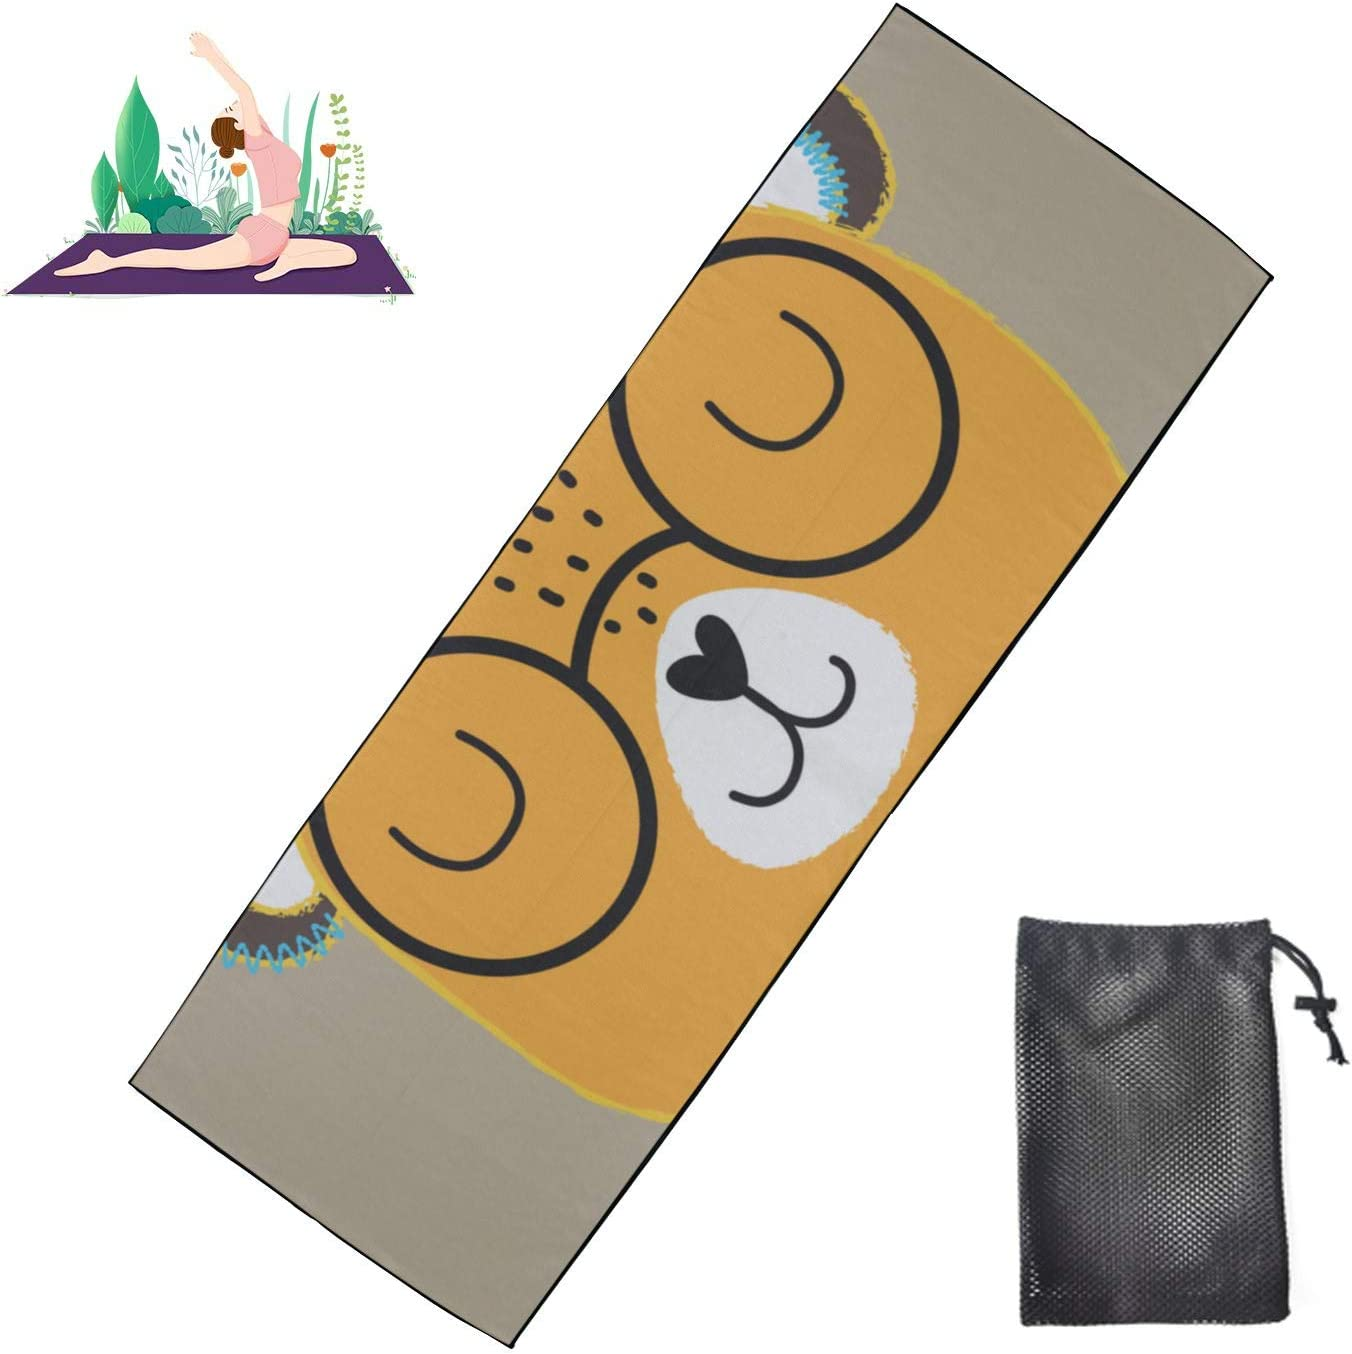 Huqalh Outdoor Yoga Mats Glasses Handsome Towel M Soft Ranking Time sale TOP17 Bear